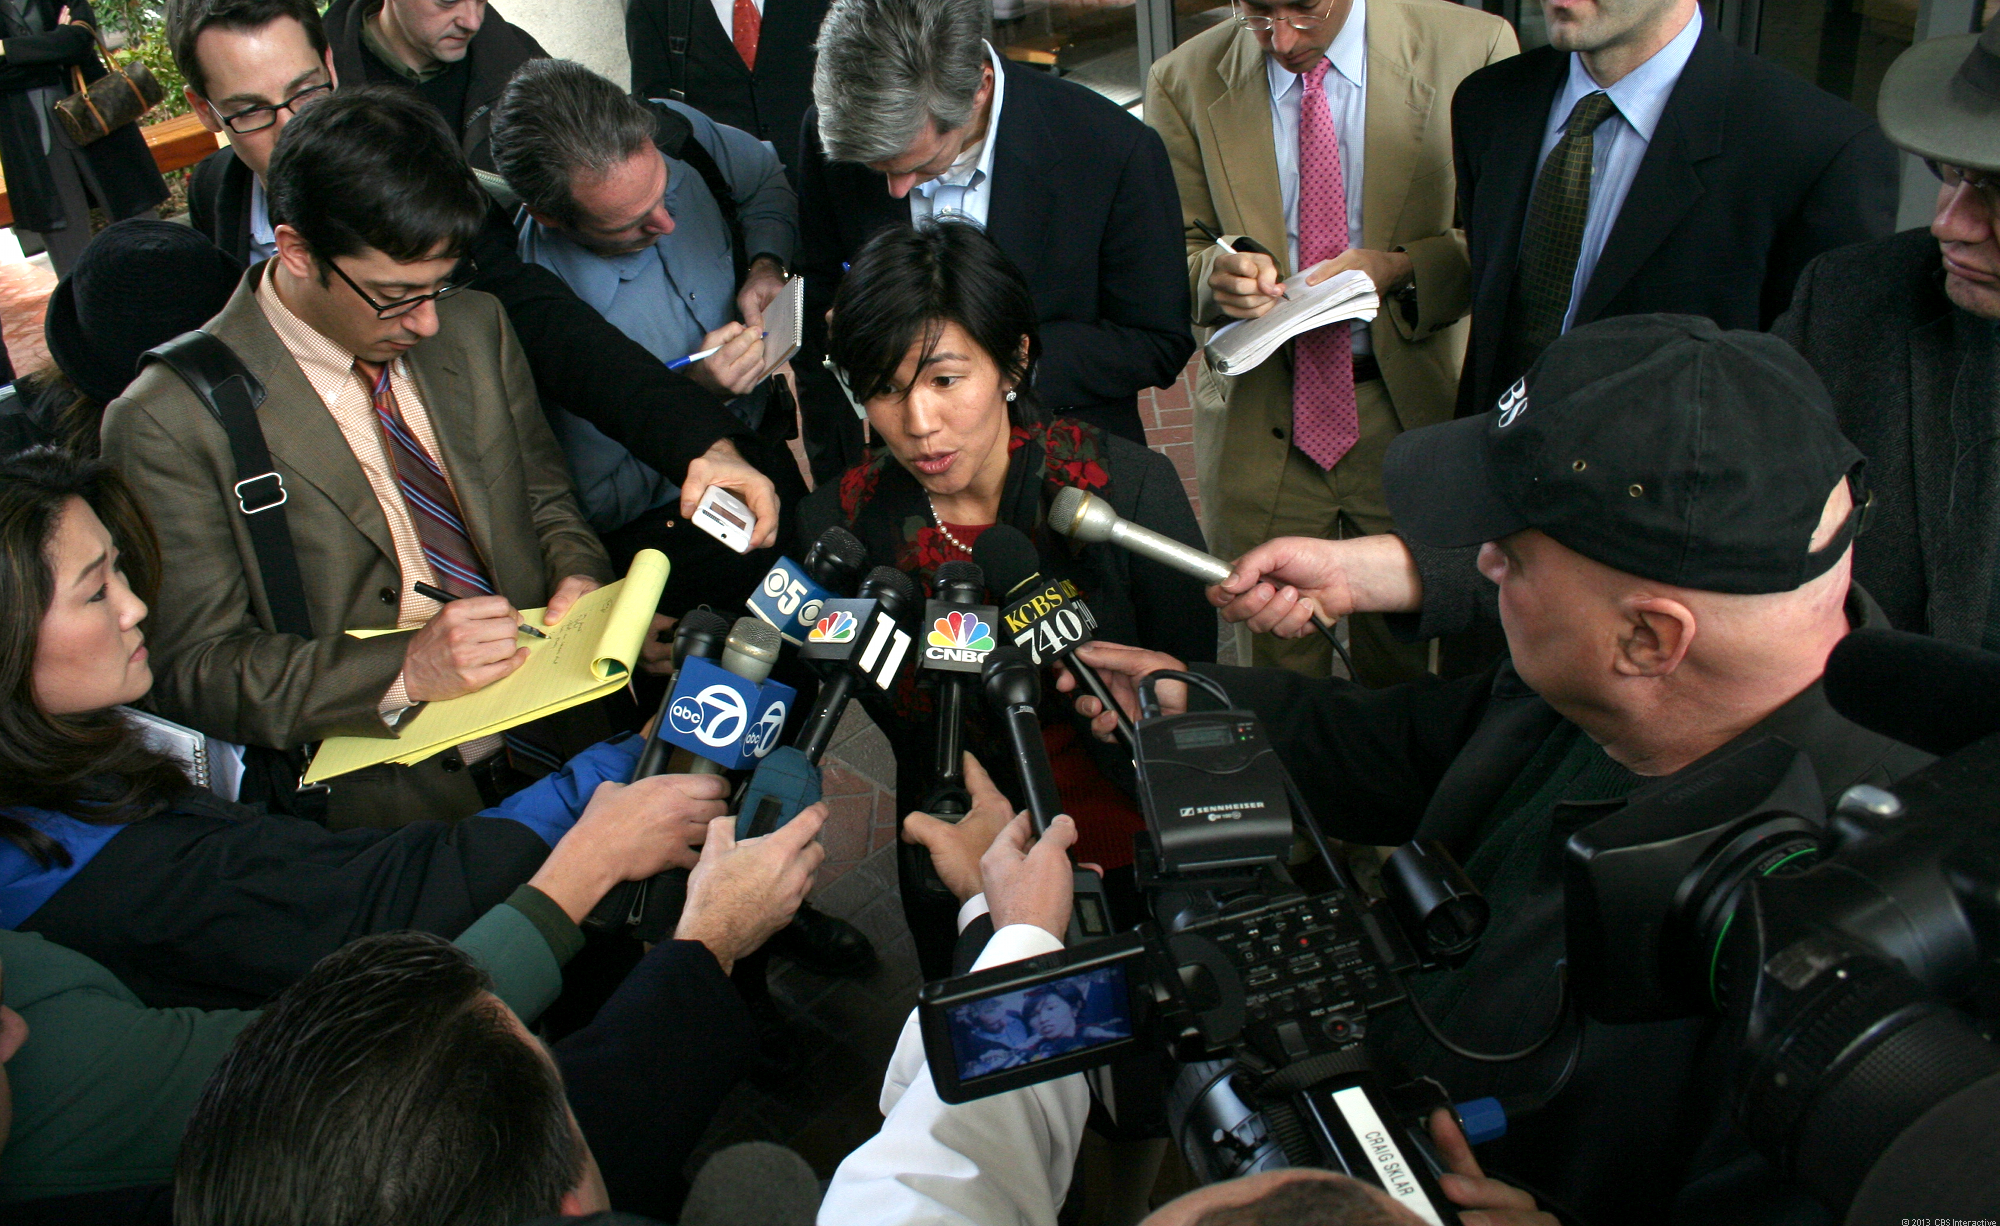 Nicole Wong, answering questions in front of the San Jose federal courthouse in 2006, when Google fought a legal battle against a broad Justice Department request for user search terms.